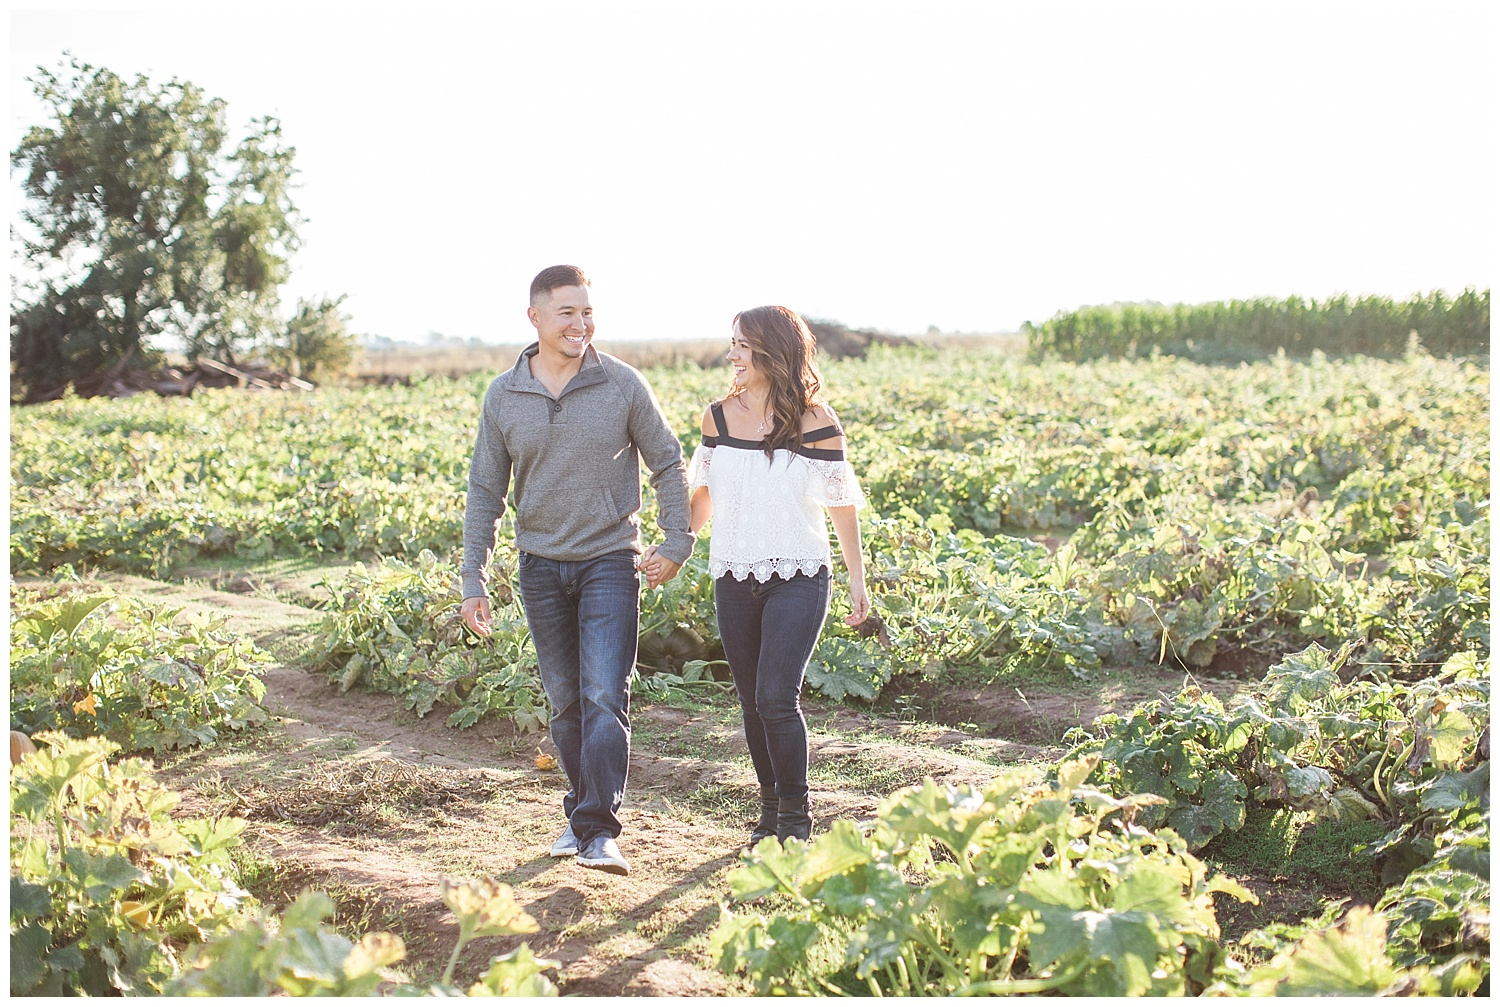 keemas-pumpkin-patch-elk-grove-sacramento-engagement-photographer-fall-autumn-californiaNICOLEQUIROZ_01.jpg